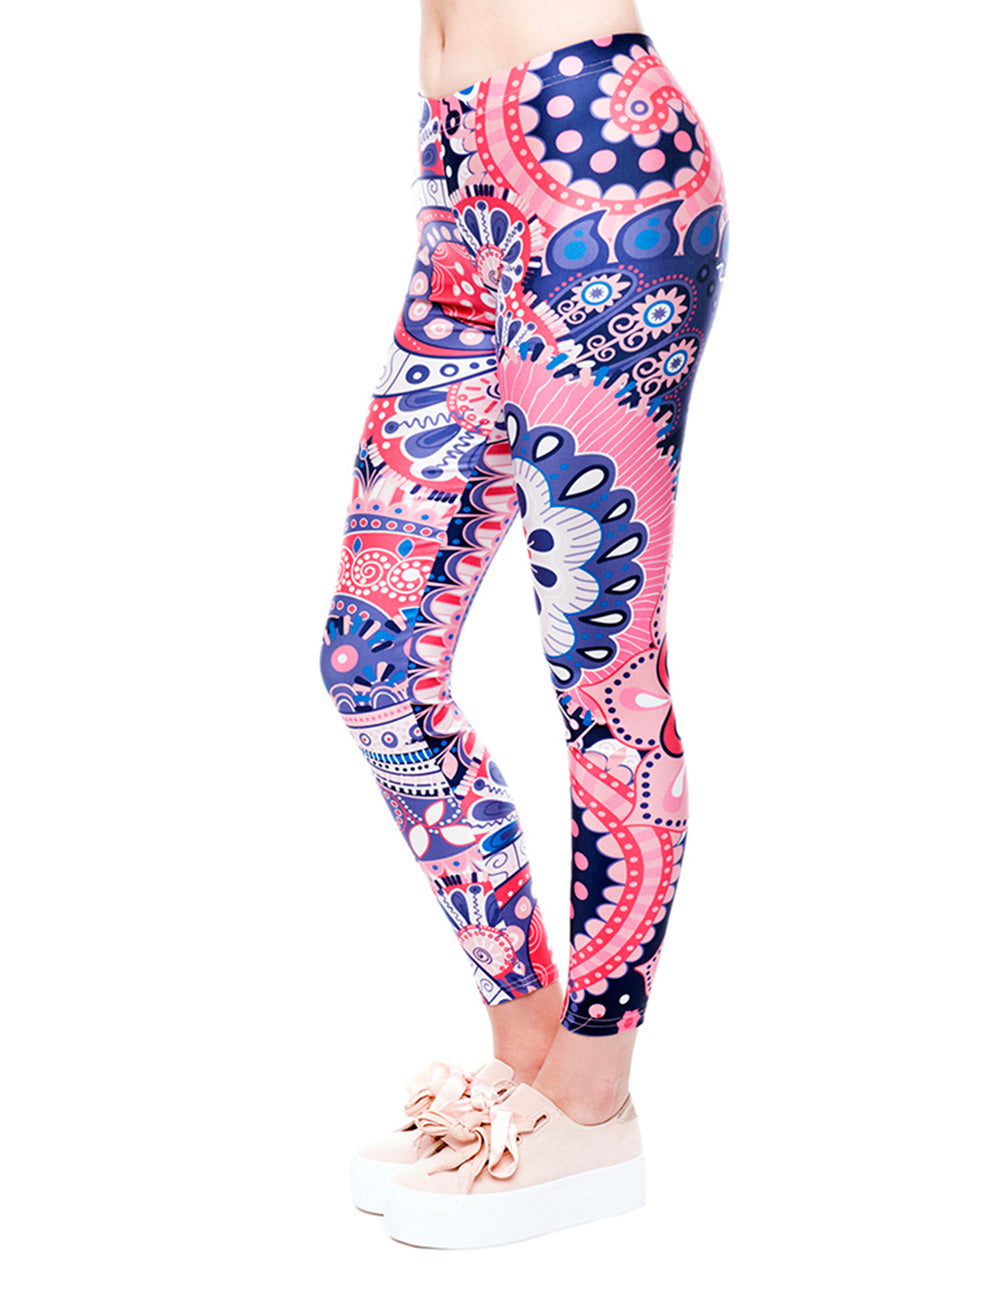 Eye Catching Blossom Printed Bottoms 3D Digital Chic Trend